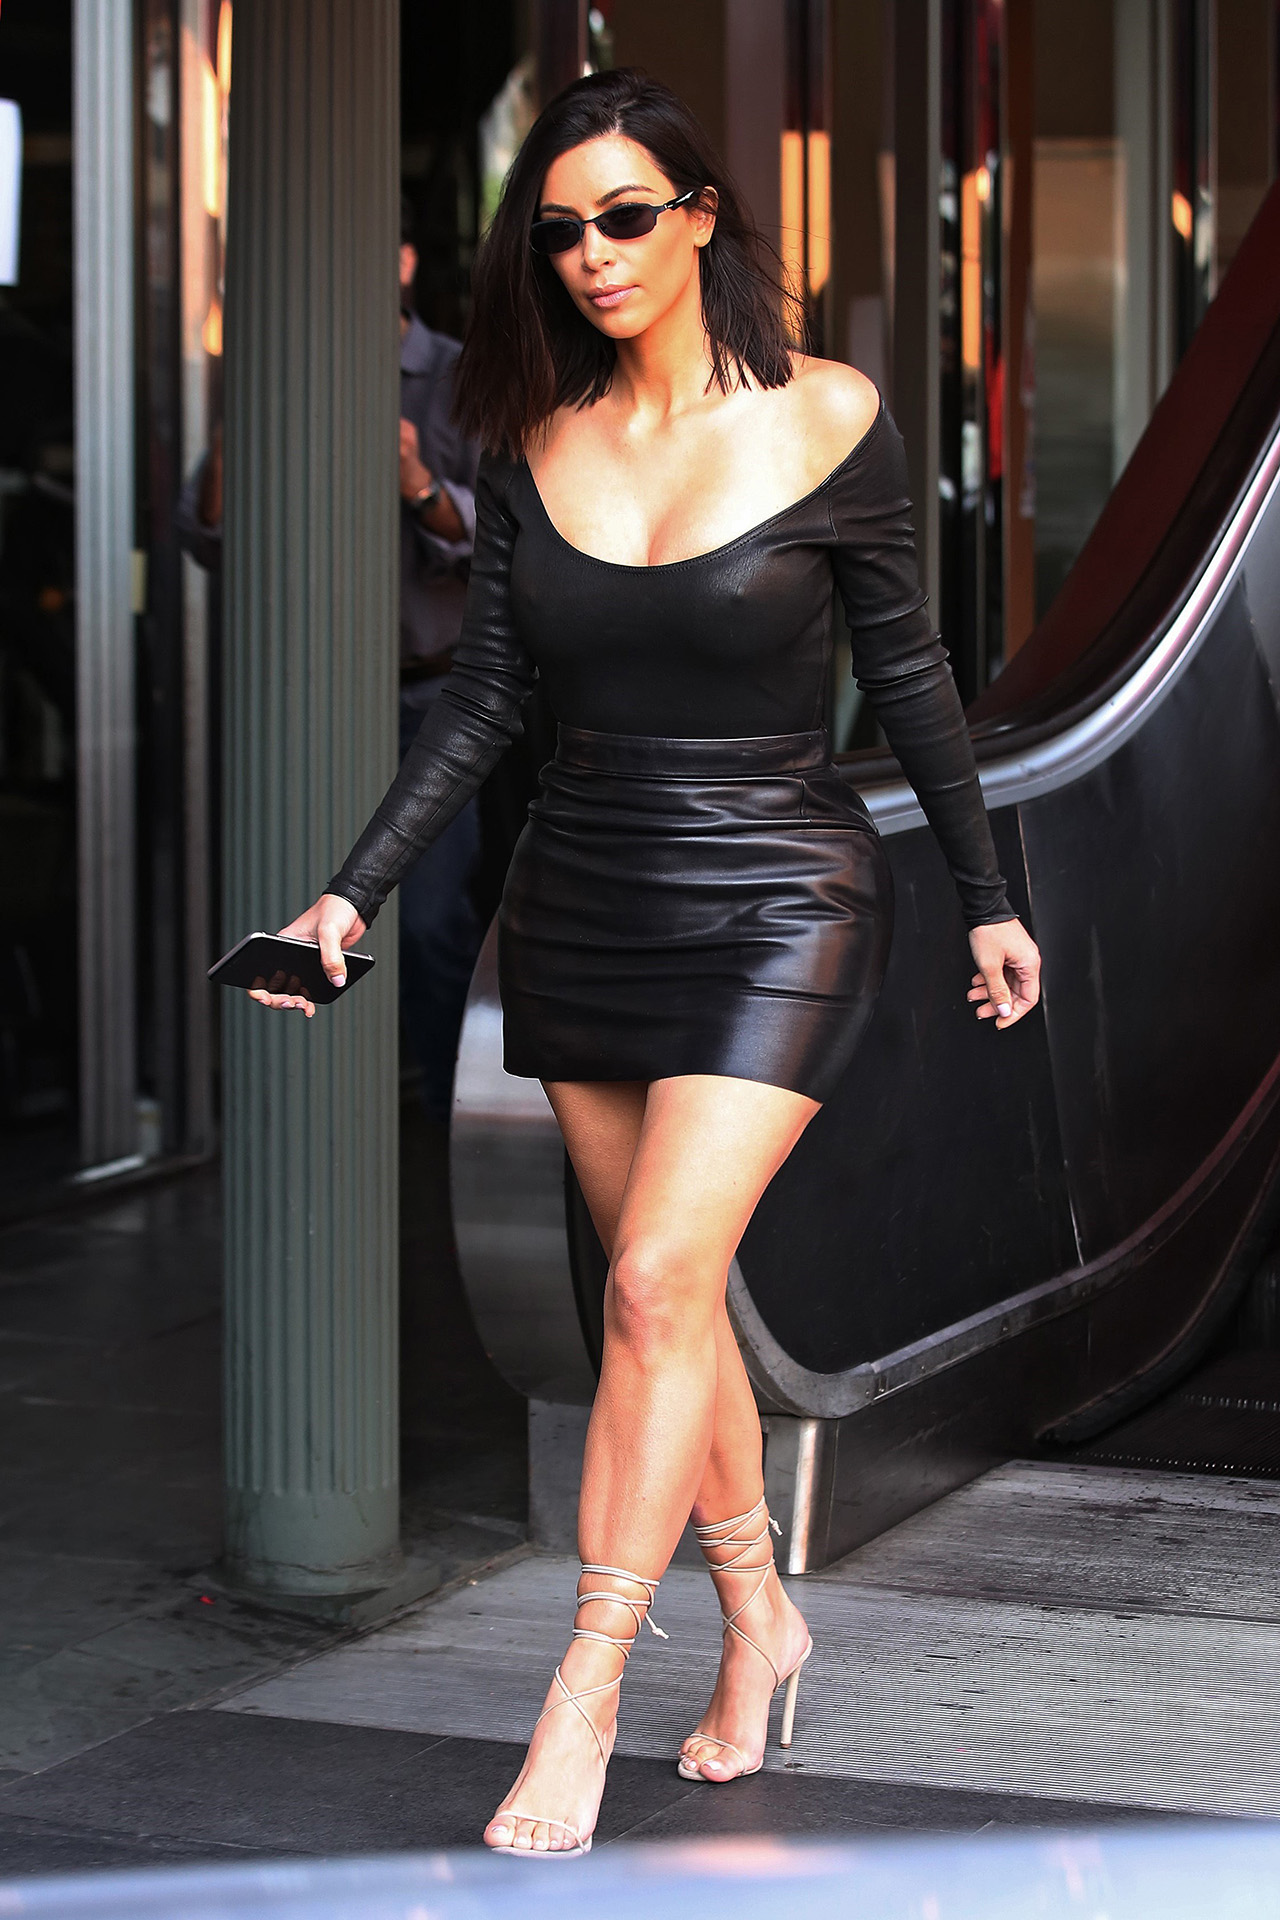 Los Angeles, CA  - Kim Kardashian seen leaving Chin Chin Restaurant with Joanathon and sister Kourtney.  BACKGRID USA 8 MAY 2017  BYLINE MUST READ: 4CRNS / BACKGRID  Pictured: Kim Kardashian  USA: +1 310 798 9111 usasales@backgrid.com . UK: +44 208 344 2007 uksales@backgrid.com . AUSTRALIA: +61 2 9212 2622 australiasales@backgrid.com . GERMANY: +49 4541 8565014 germanysales@backgrid.com . *UK Clients - Pictures Containing Children Please Pixelate Face Prior To Publication*